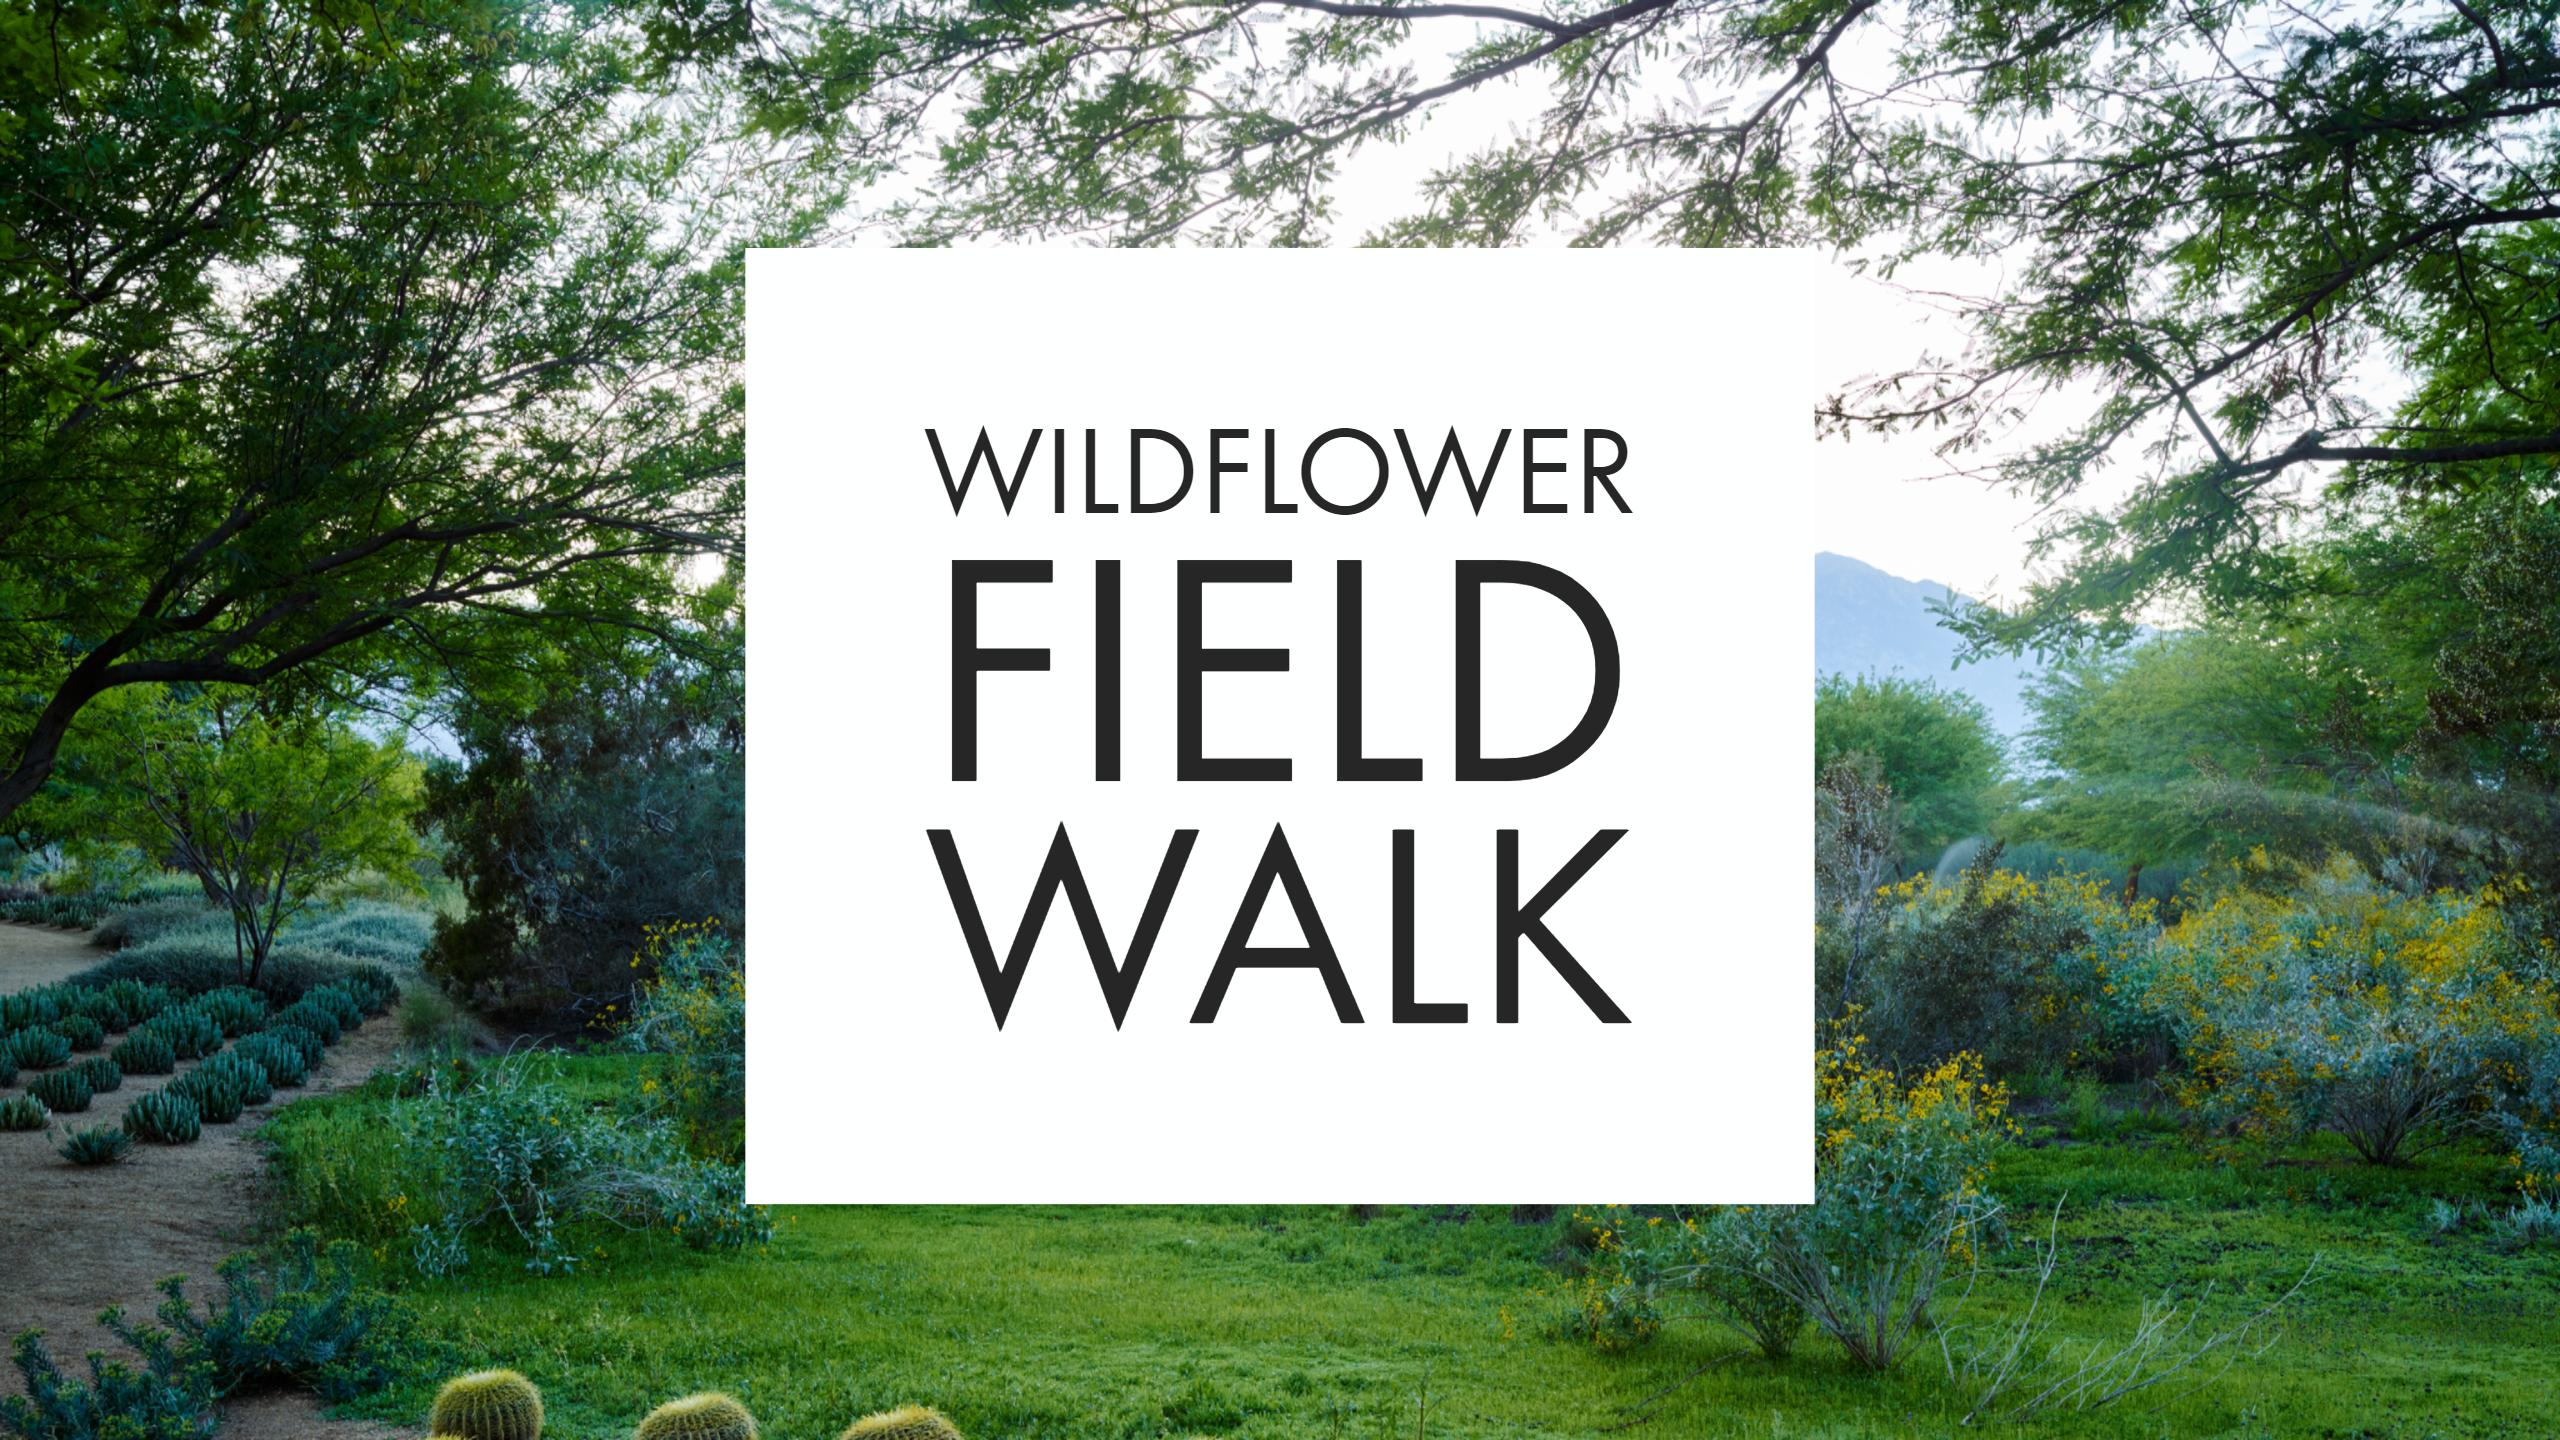 Wildflower Field Walk